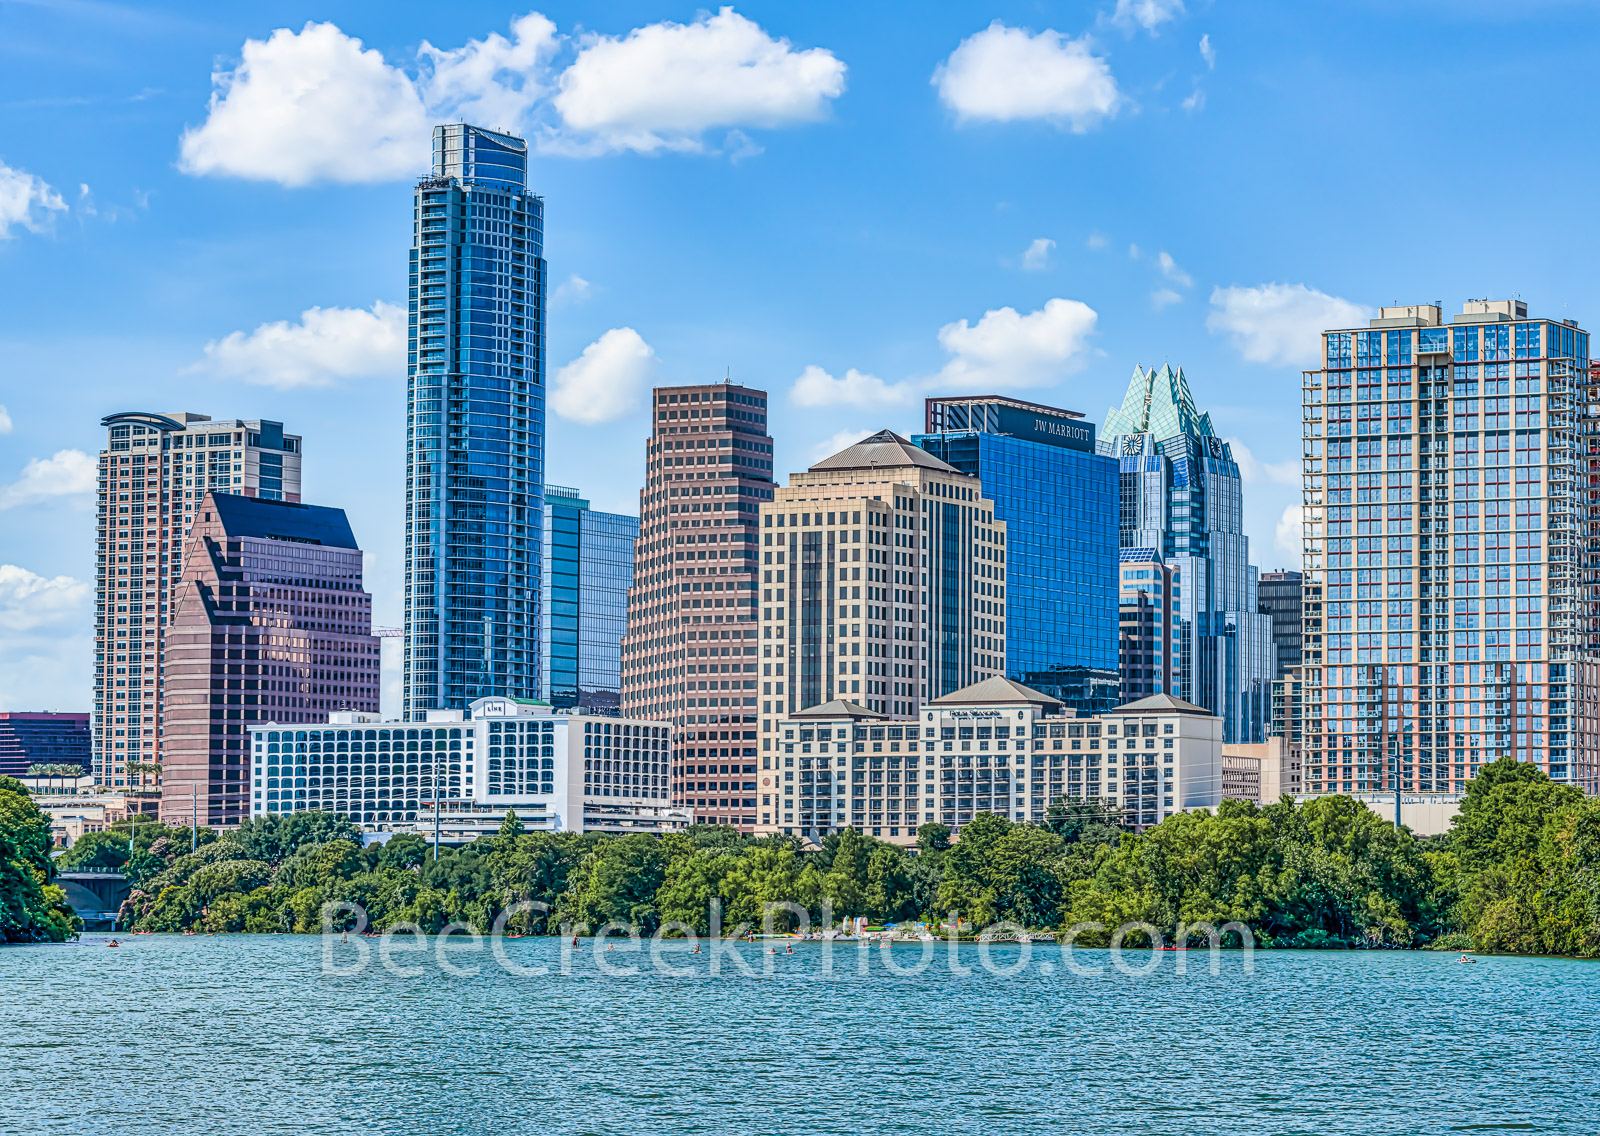 Austin Skyline Daytime - Today was a nice day with blue skies and puffy white clouds so we captured this Austin Skyline. Austin...